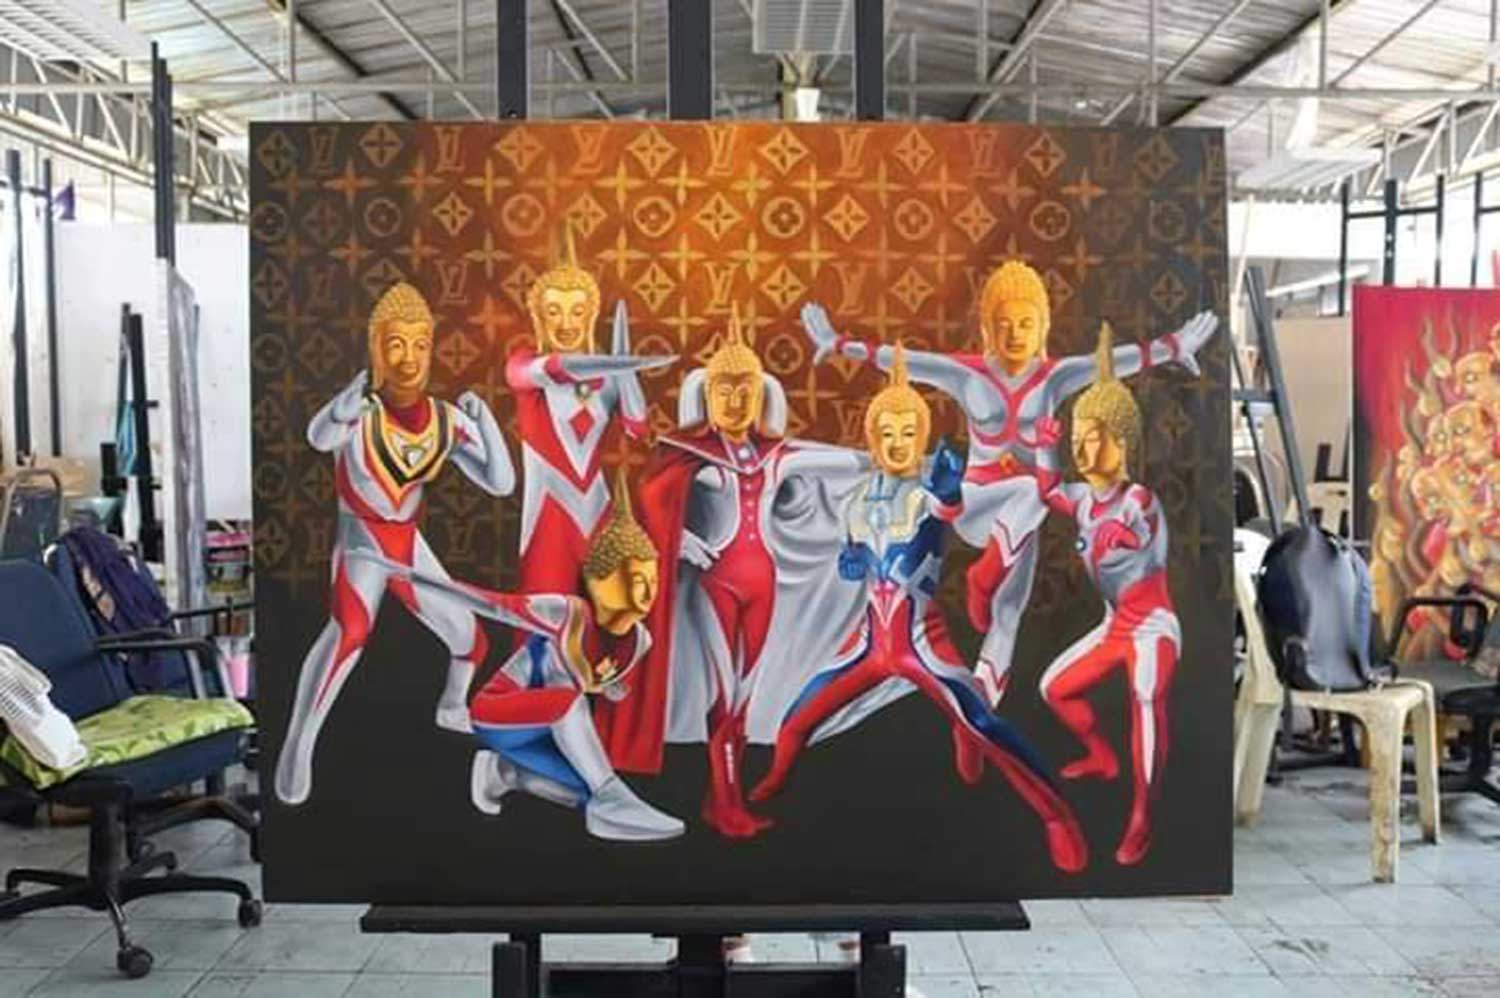 The Nakhon Ratchasima Rajabhat University bans the sale of controversial paintings depicting the Japanese superhero character Ultraman as the Lord Buddha. (Photo supplied by Prasit Tangprasert)